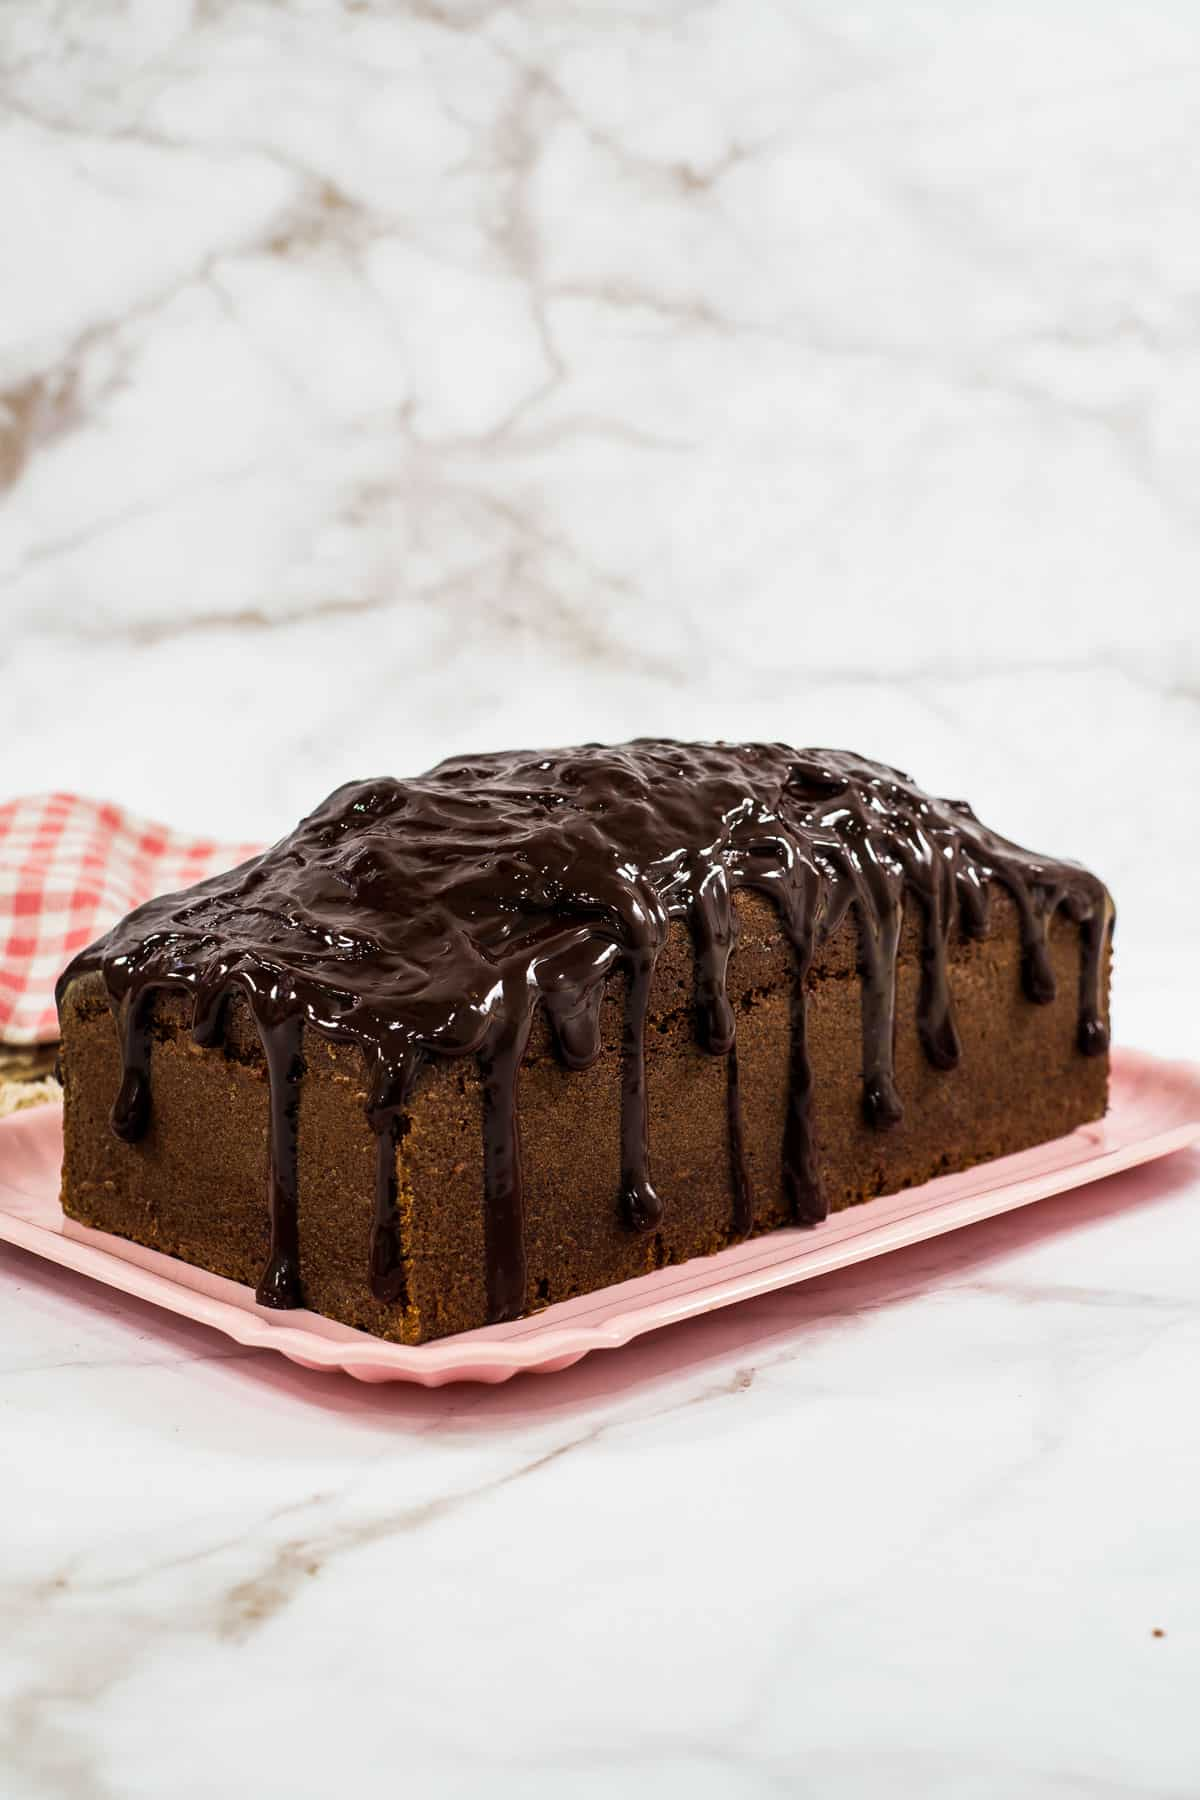 A loaf of chocolate cake with chocolate ganache topping and drips on a pink plate